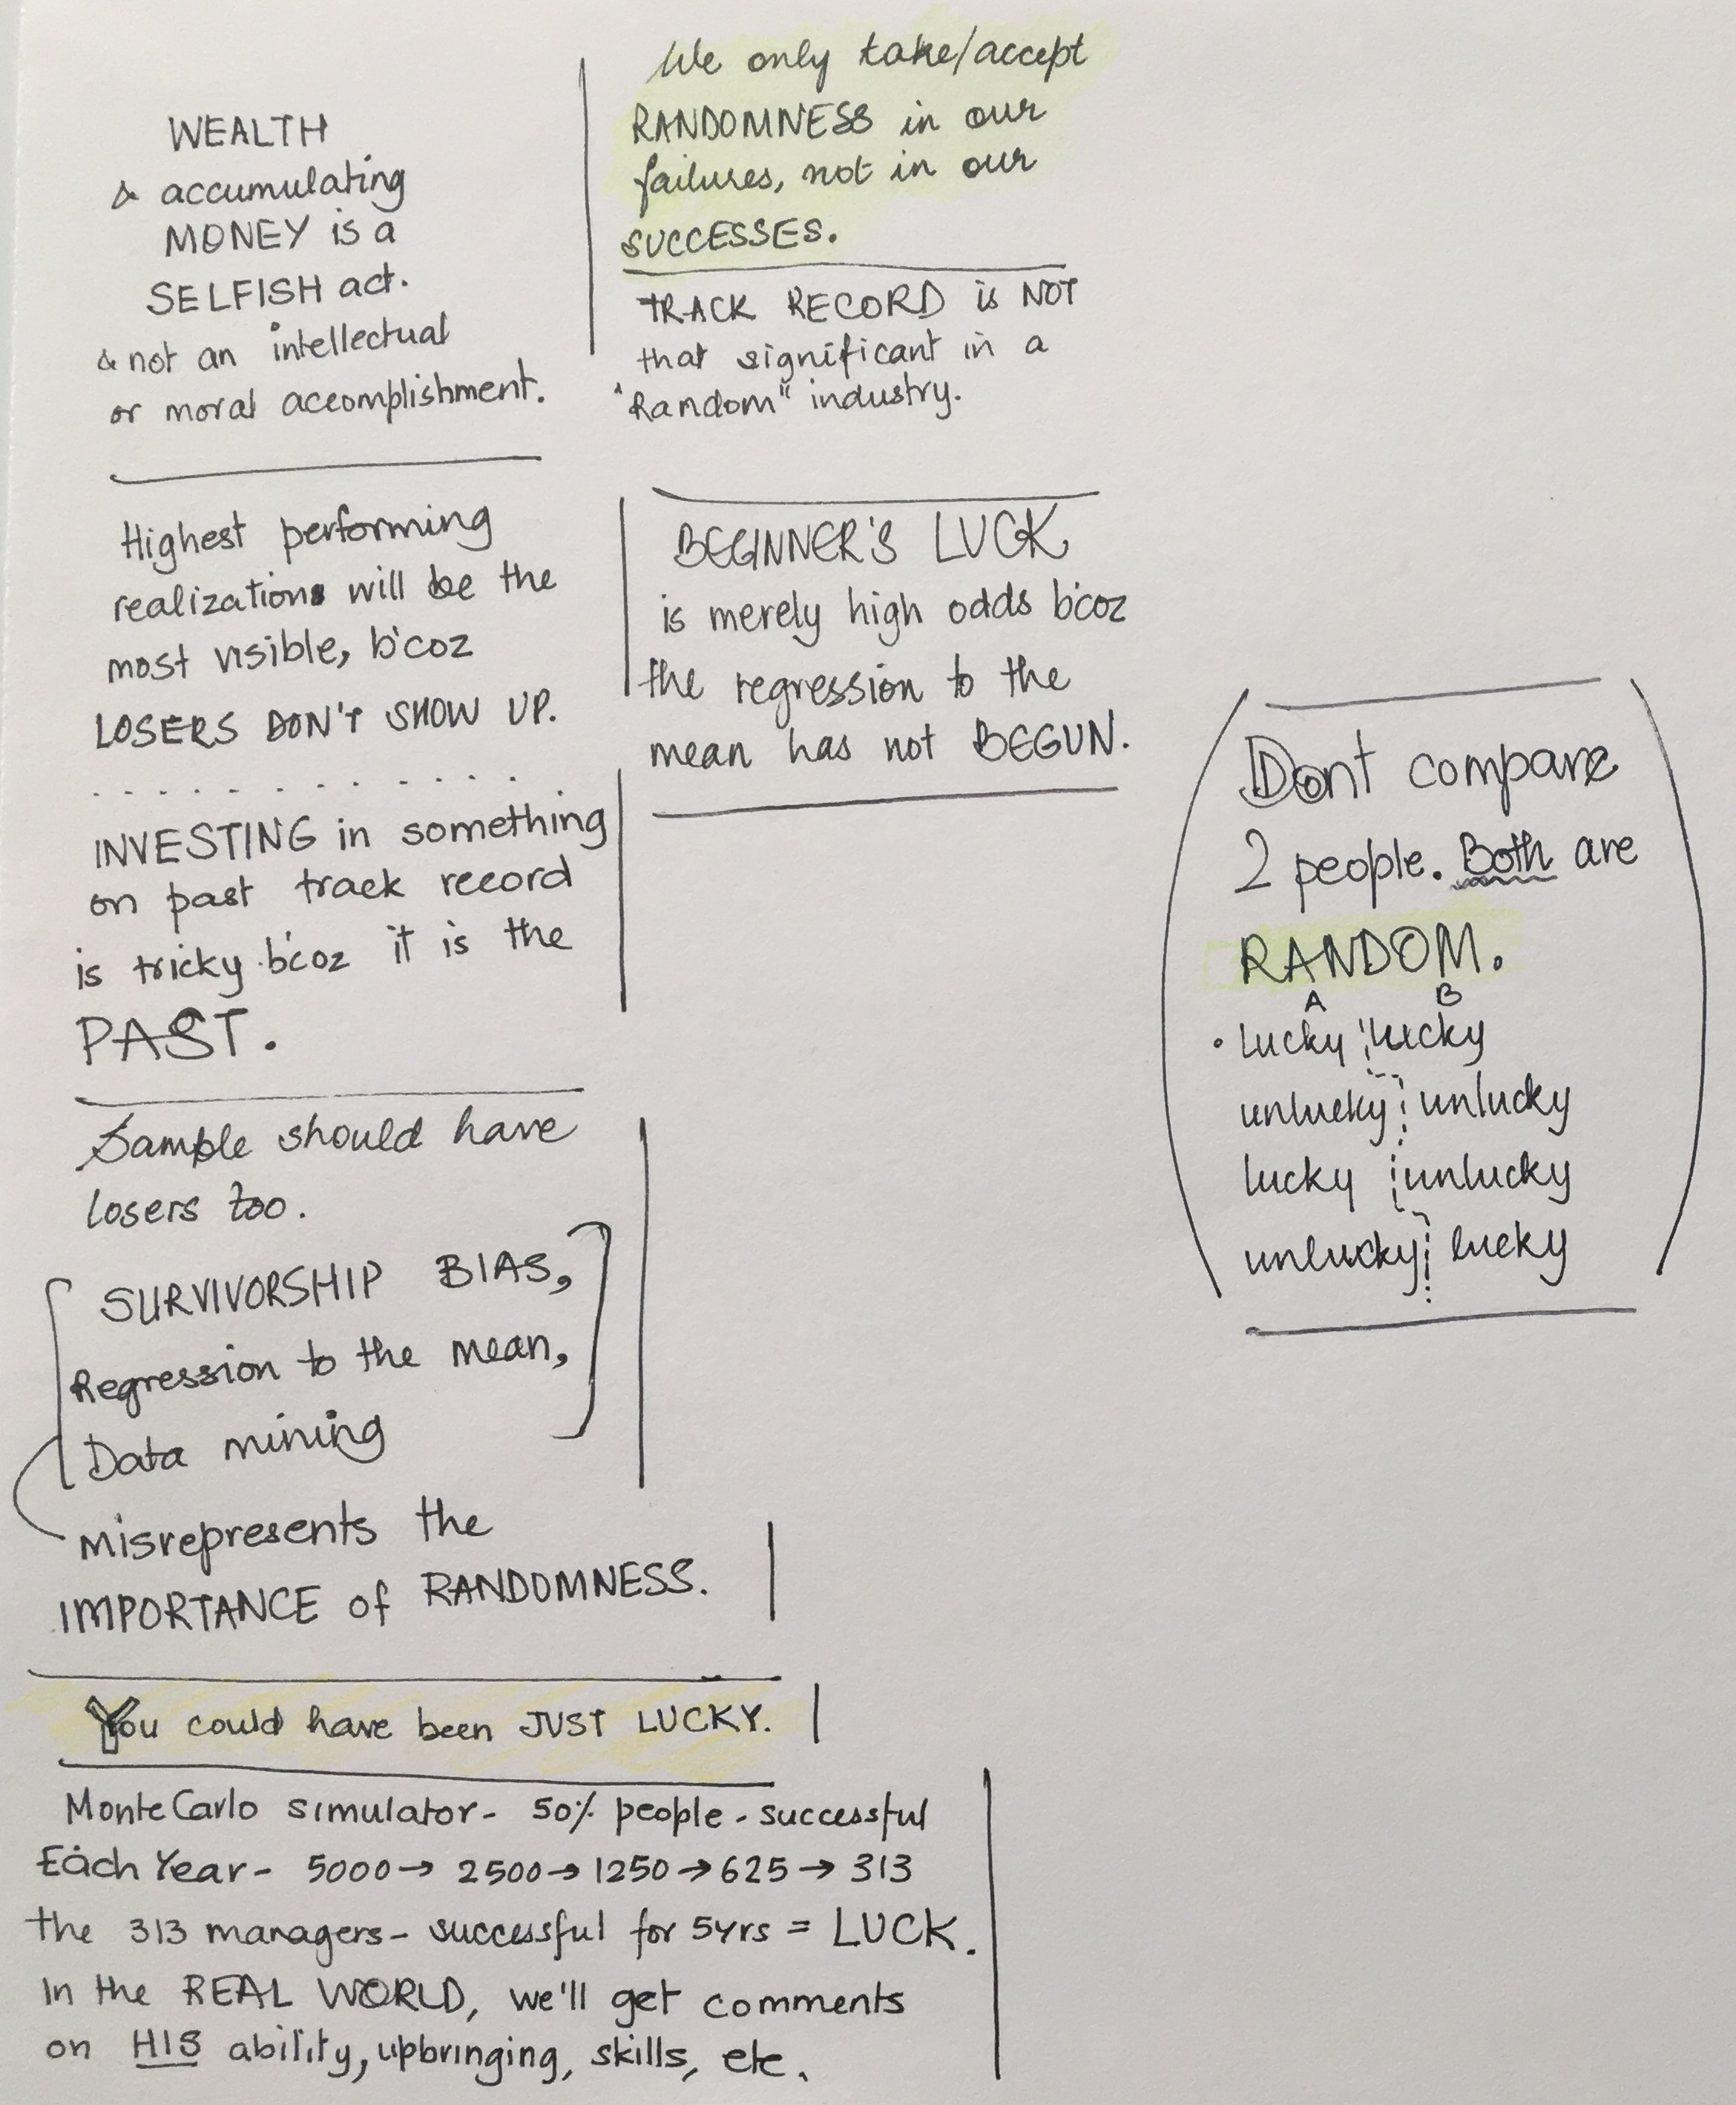 Fooled by Randomness- booknotes